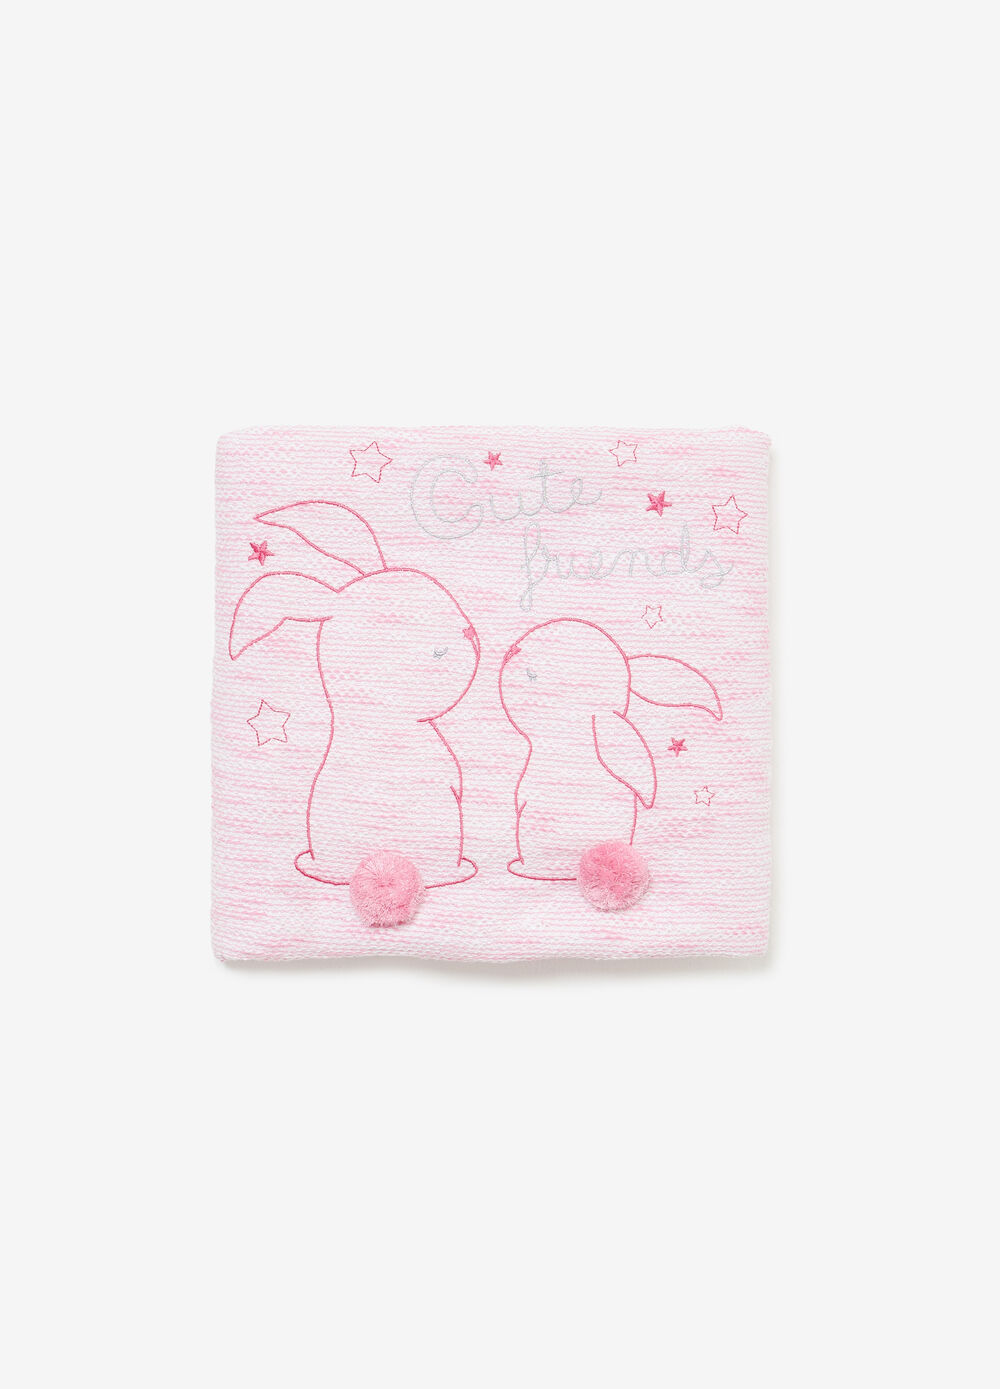 100% cotton blanket with rabbit embroidery